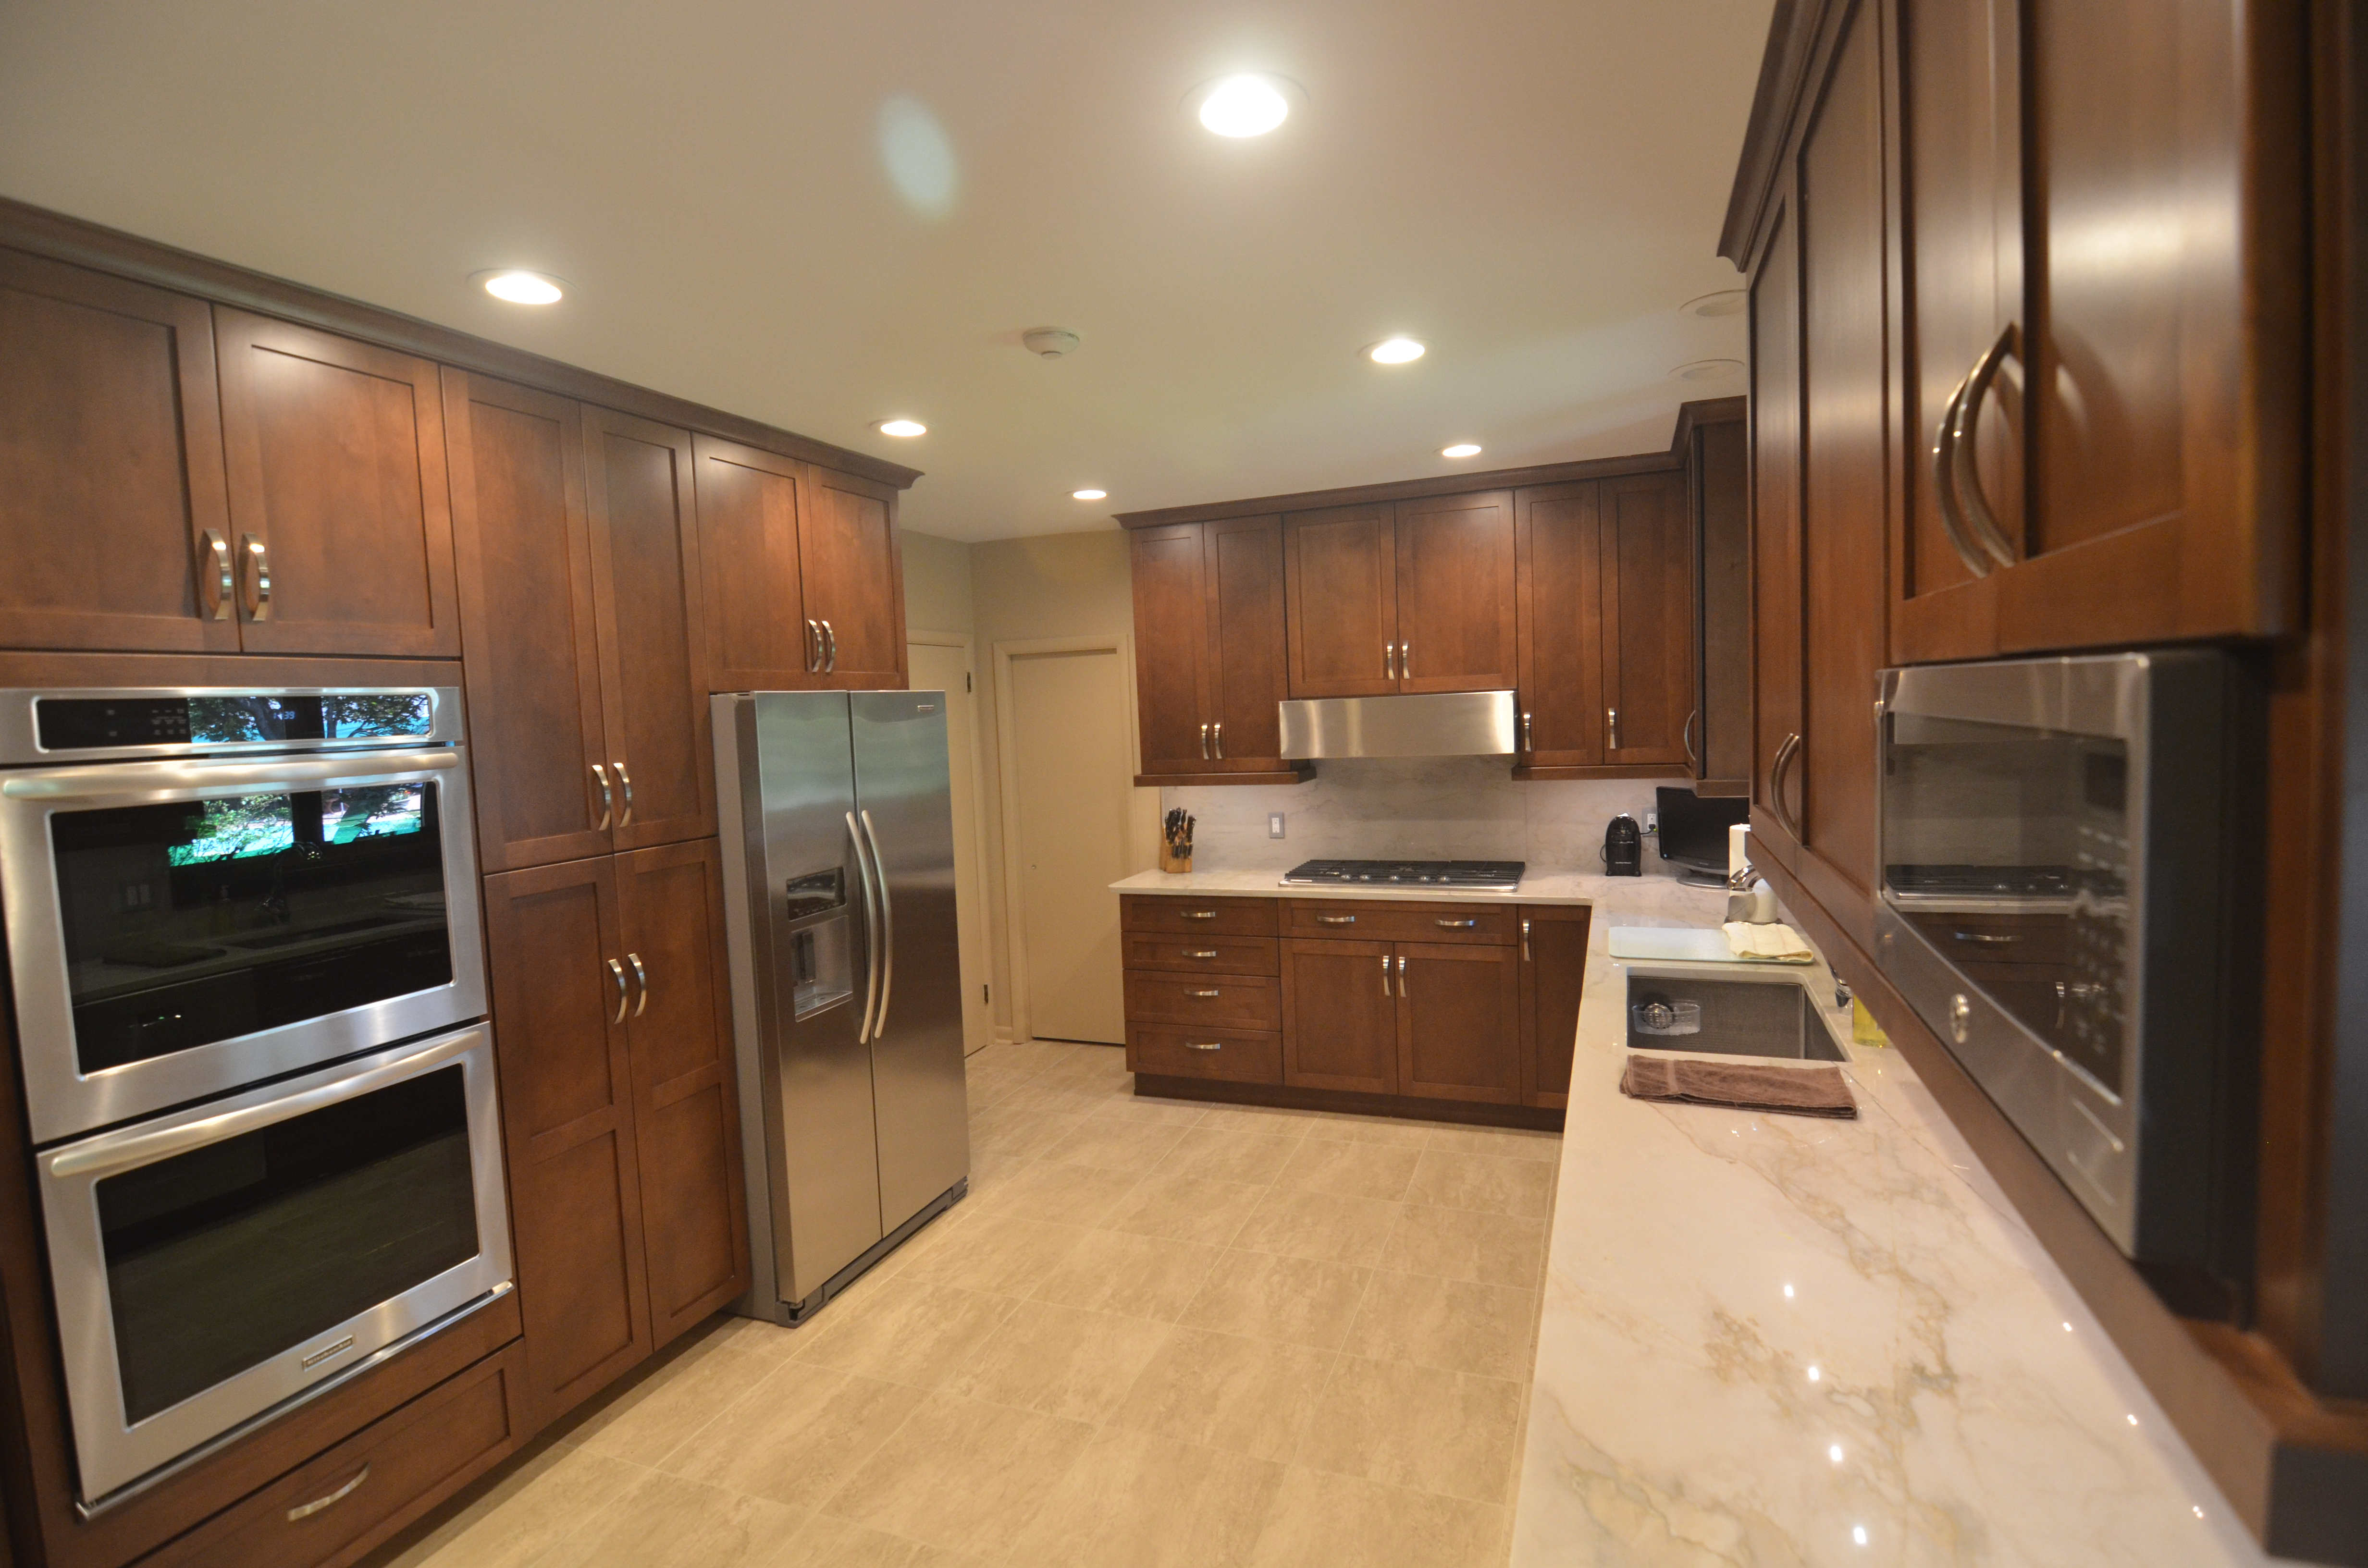 Endearing Lower Merion Township Kitchen Kitchen Gallery Next Level Remodeling Kitchen Remodeling Photo Gallery Kitchen Remodel Photo Gallery kitchen Kitchen Remodel Photo Galleries